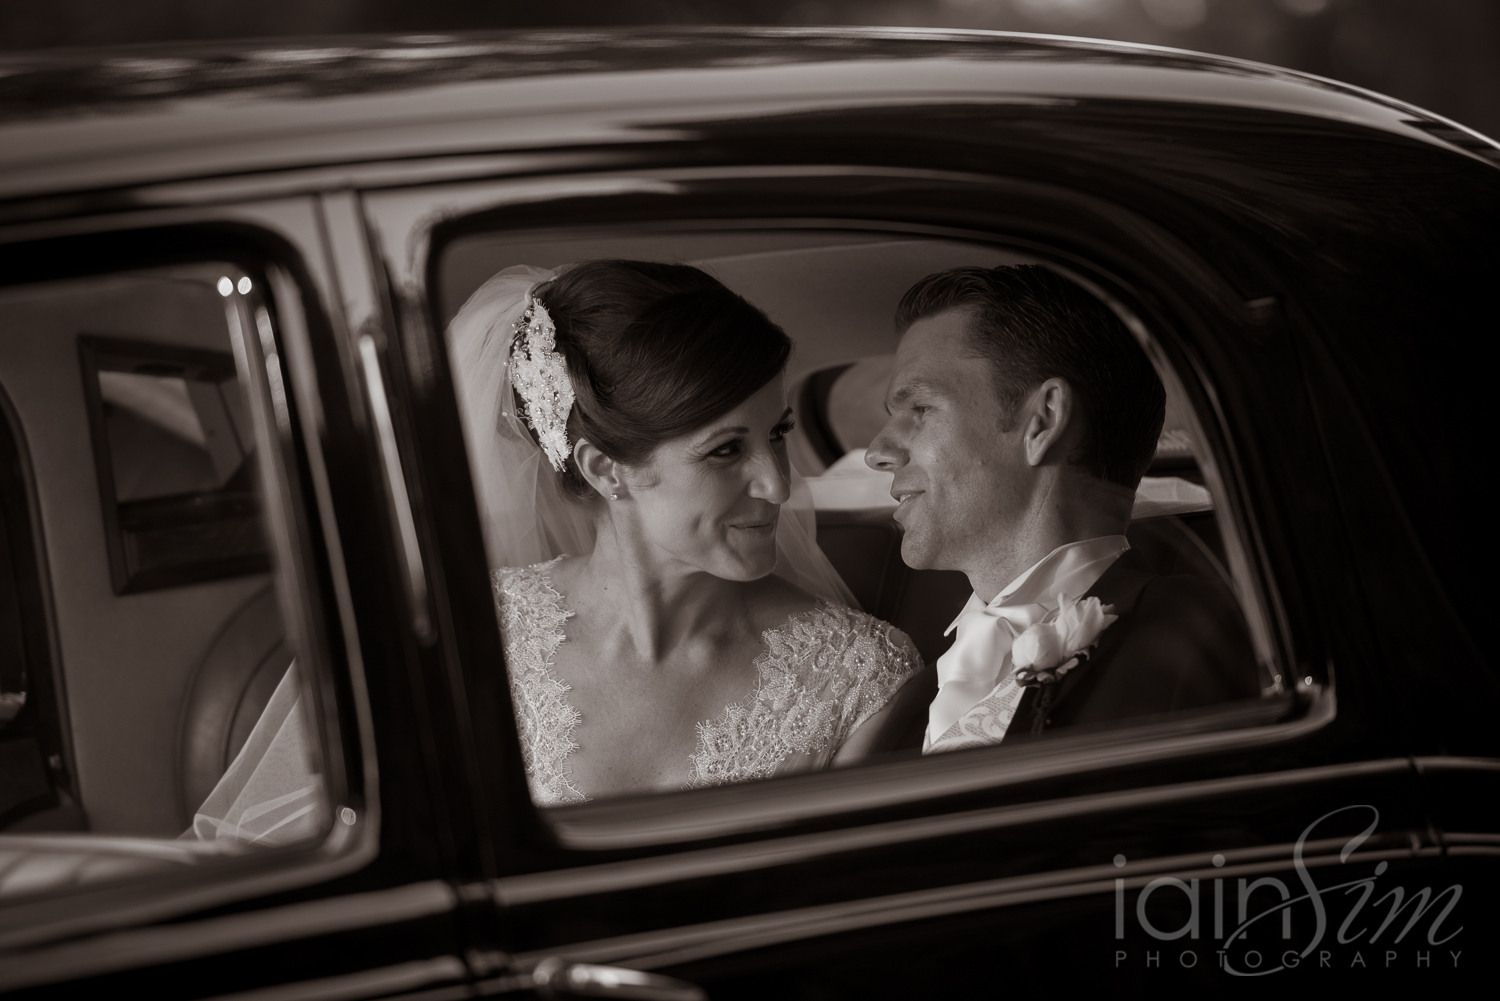 wpid-Katherine-and-Marks-RipponLea-Wedding-by-Iain-Sim-Photography_021.jpg